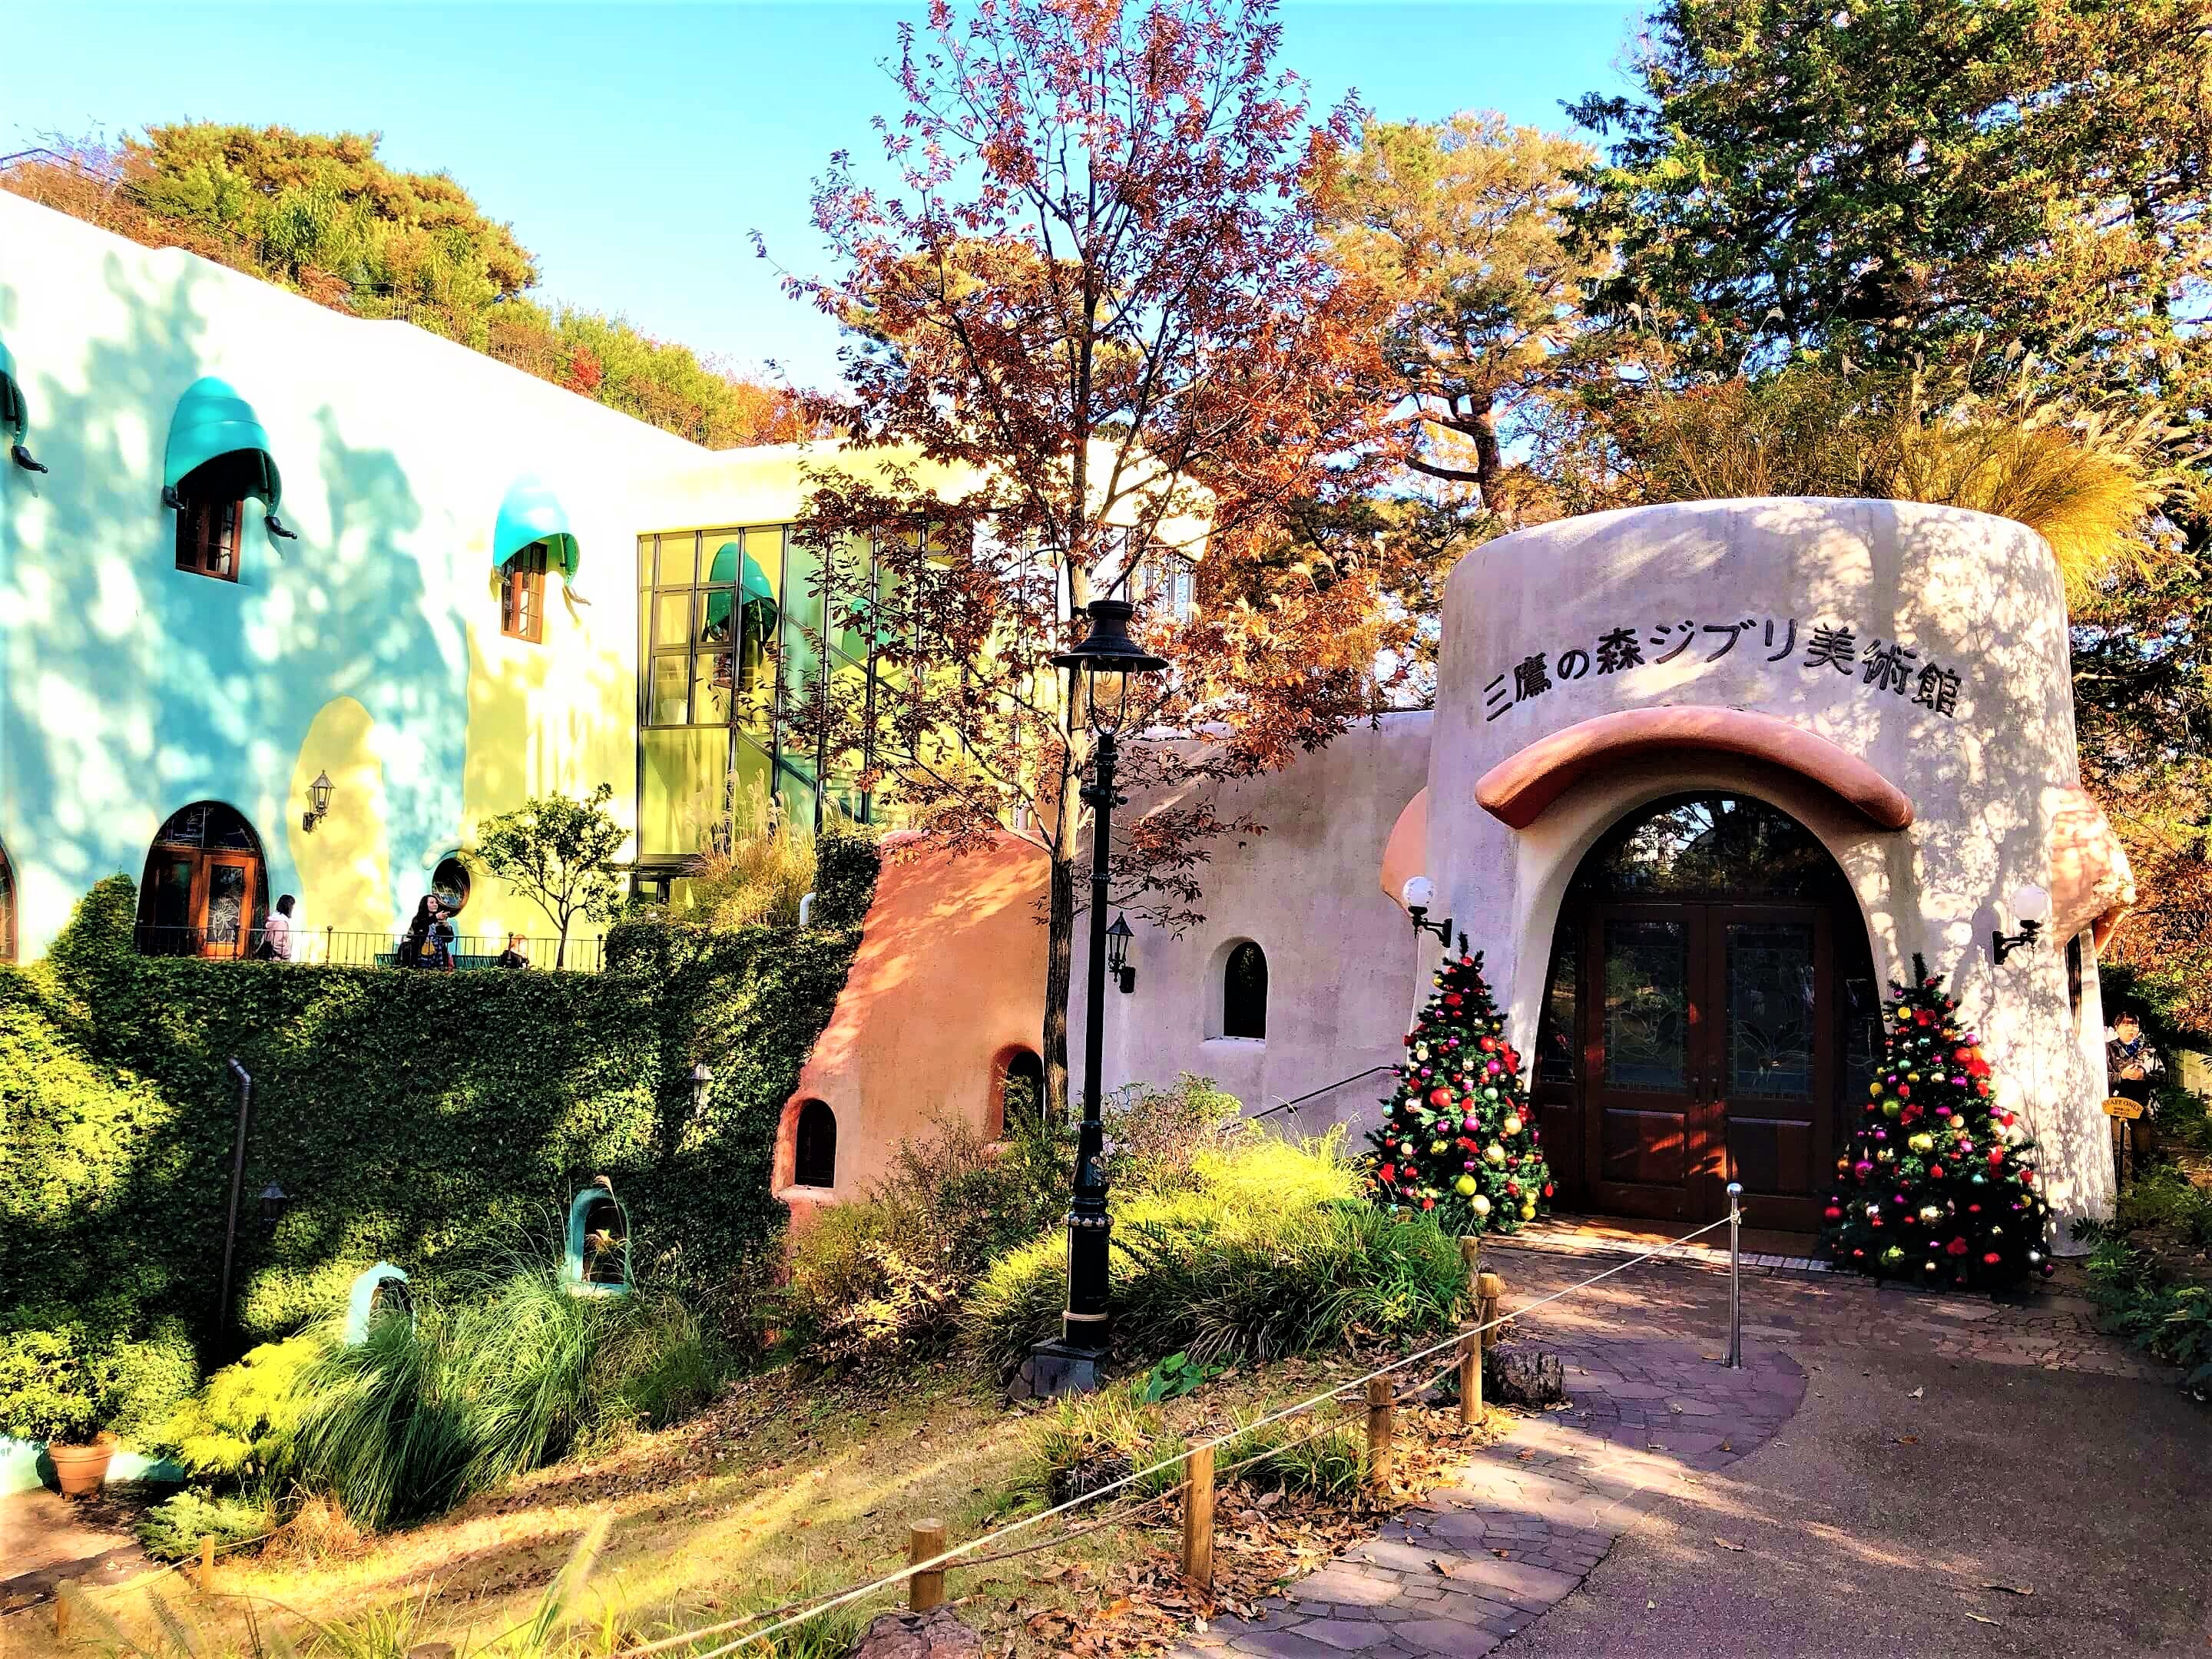 Ghibli Museum Videos: Explore the World of Studio Ghibli from Home